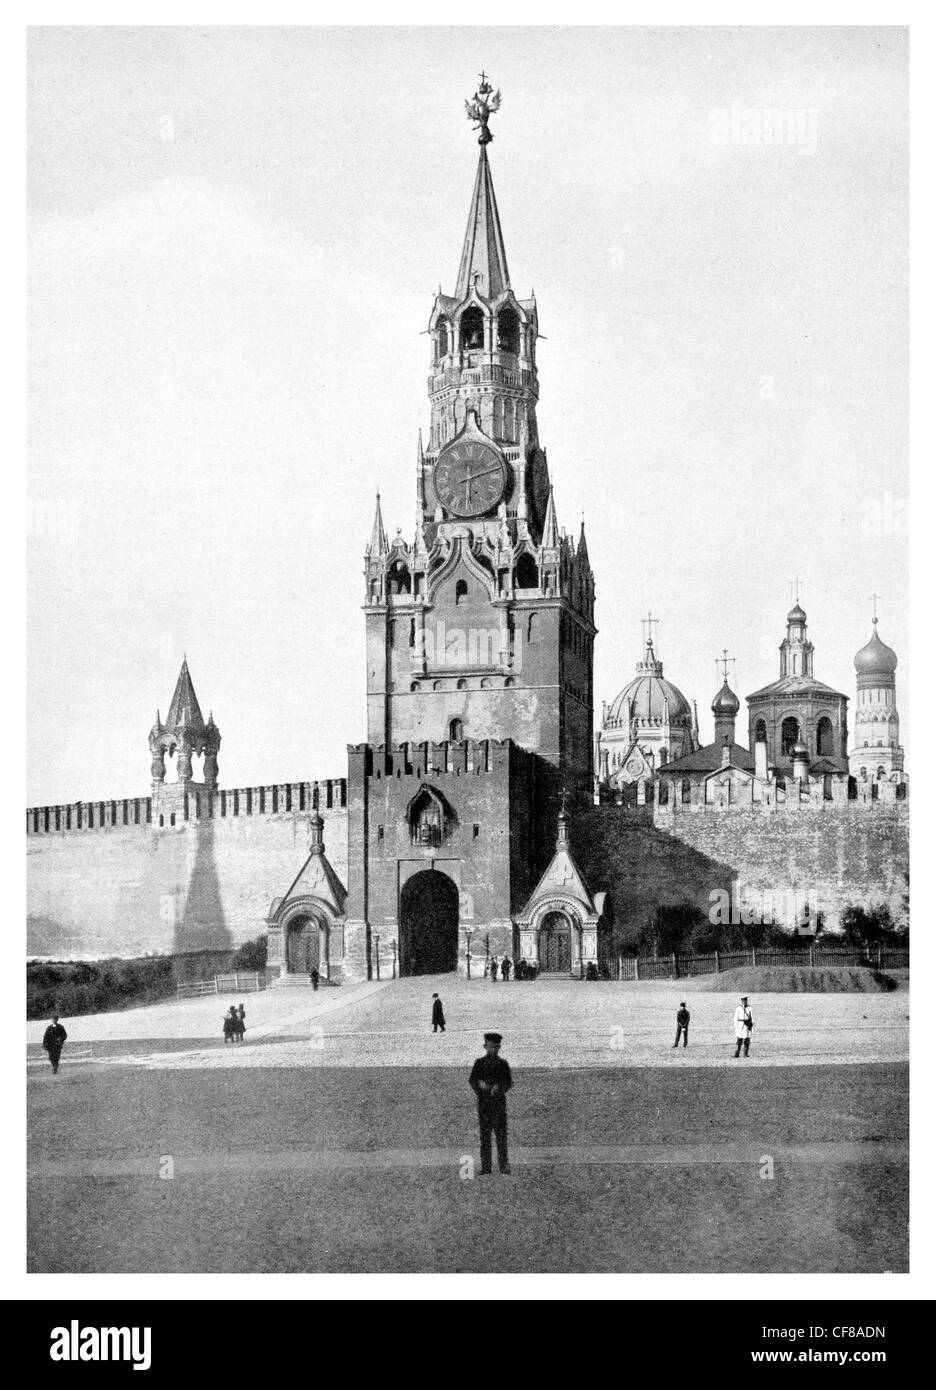 1926 Former State Entrance to the Kremlin Troitskaya Trinity Tower - Stock Image